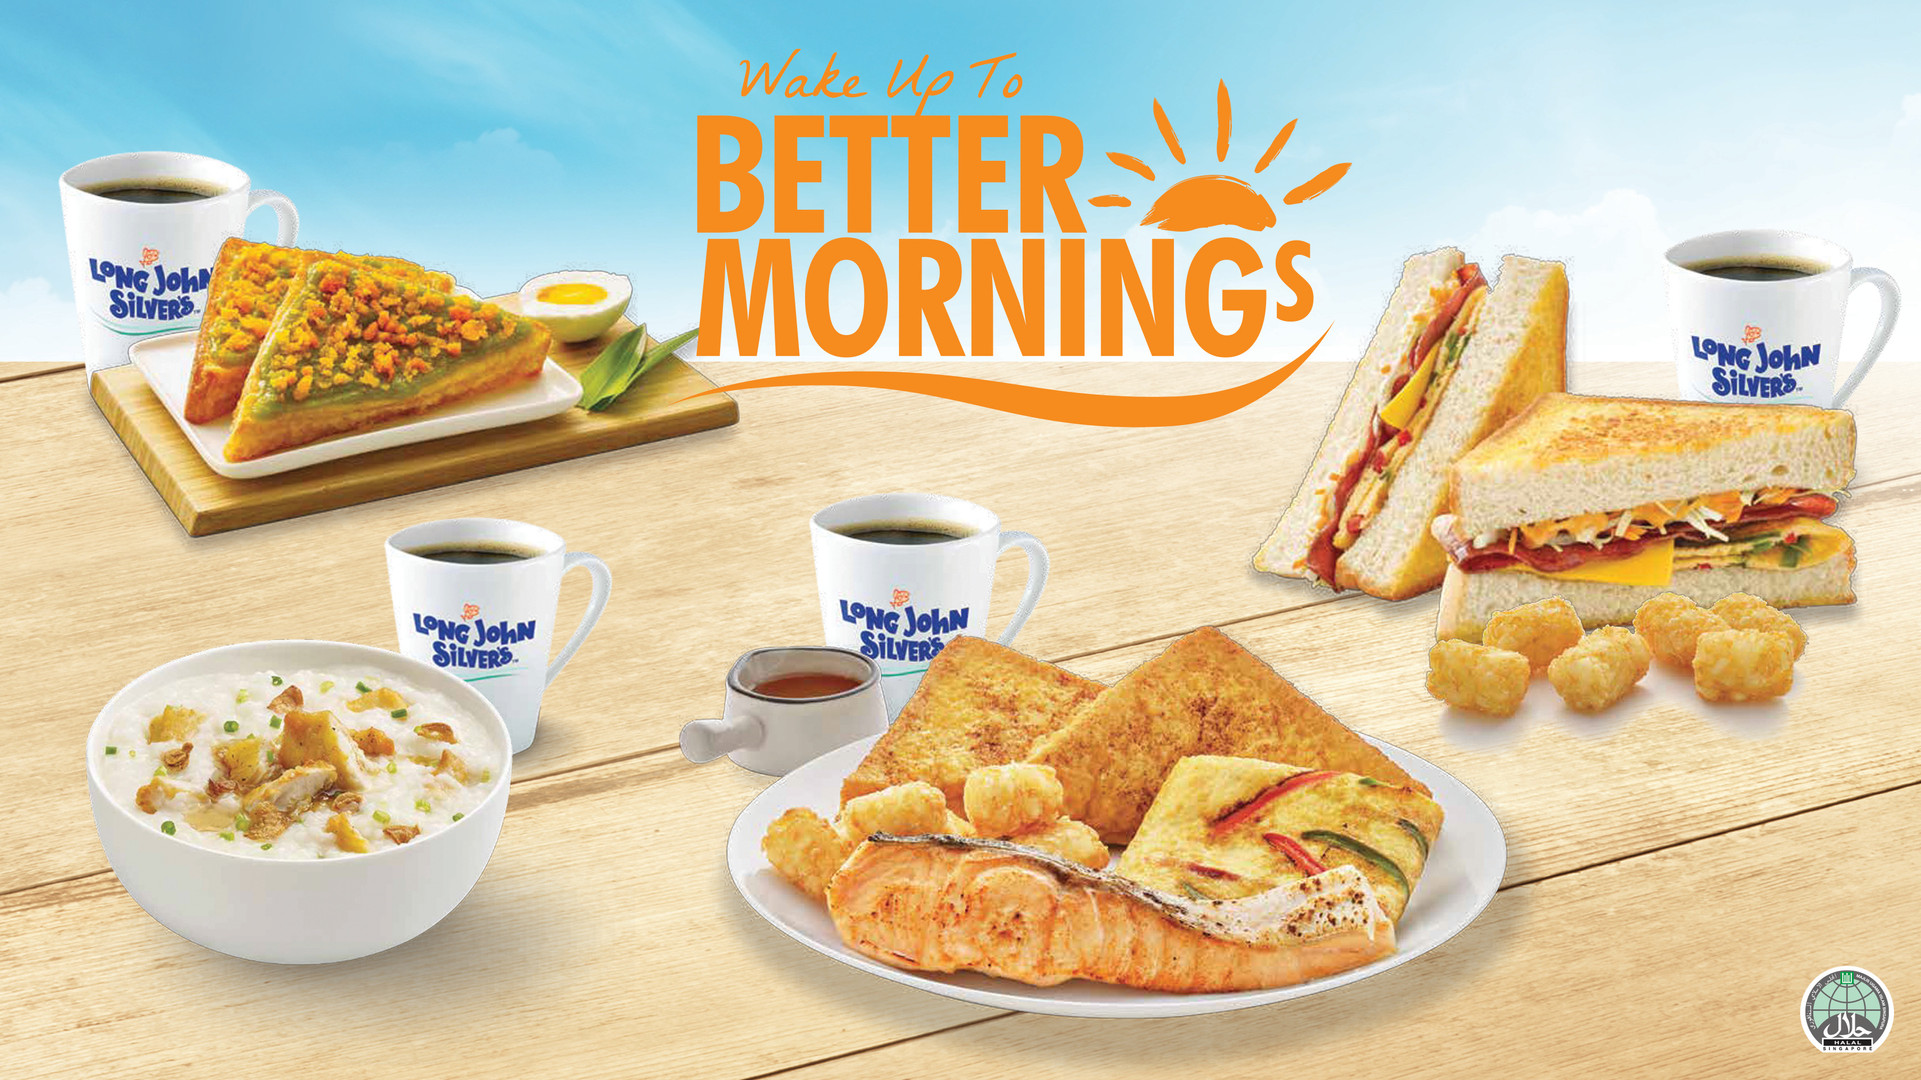 Long John Silver's Breakfast